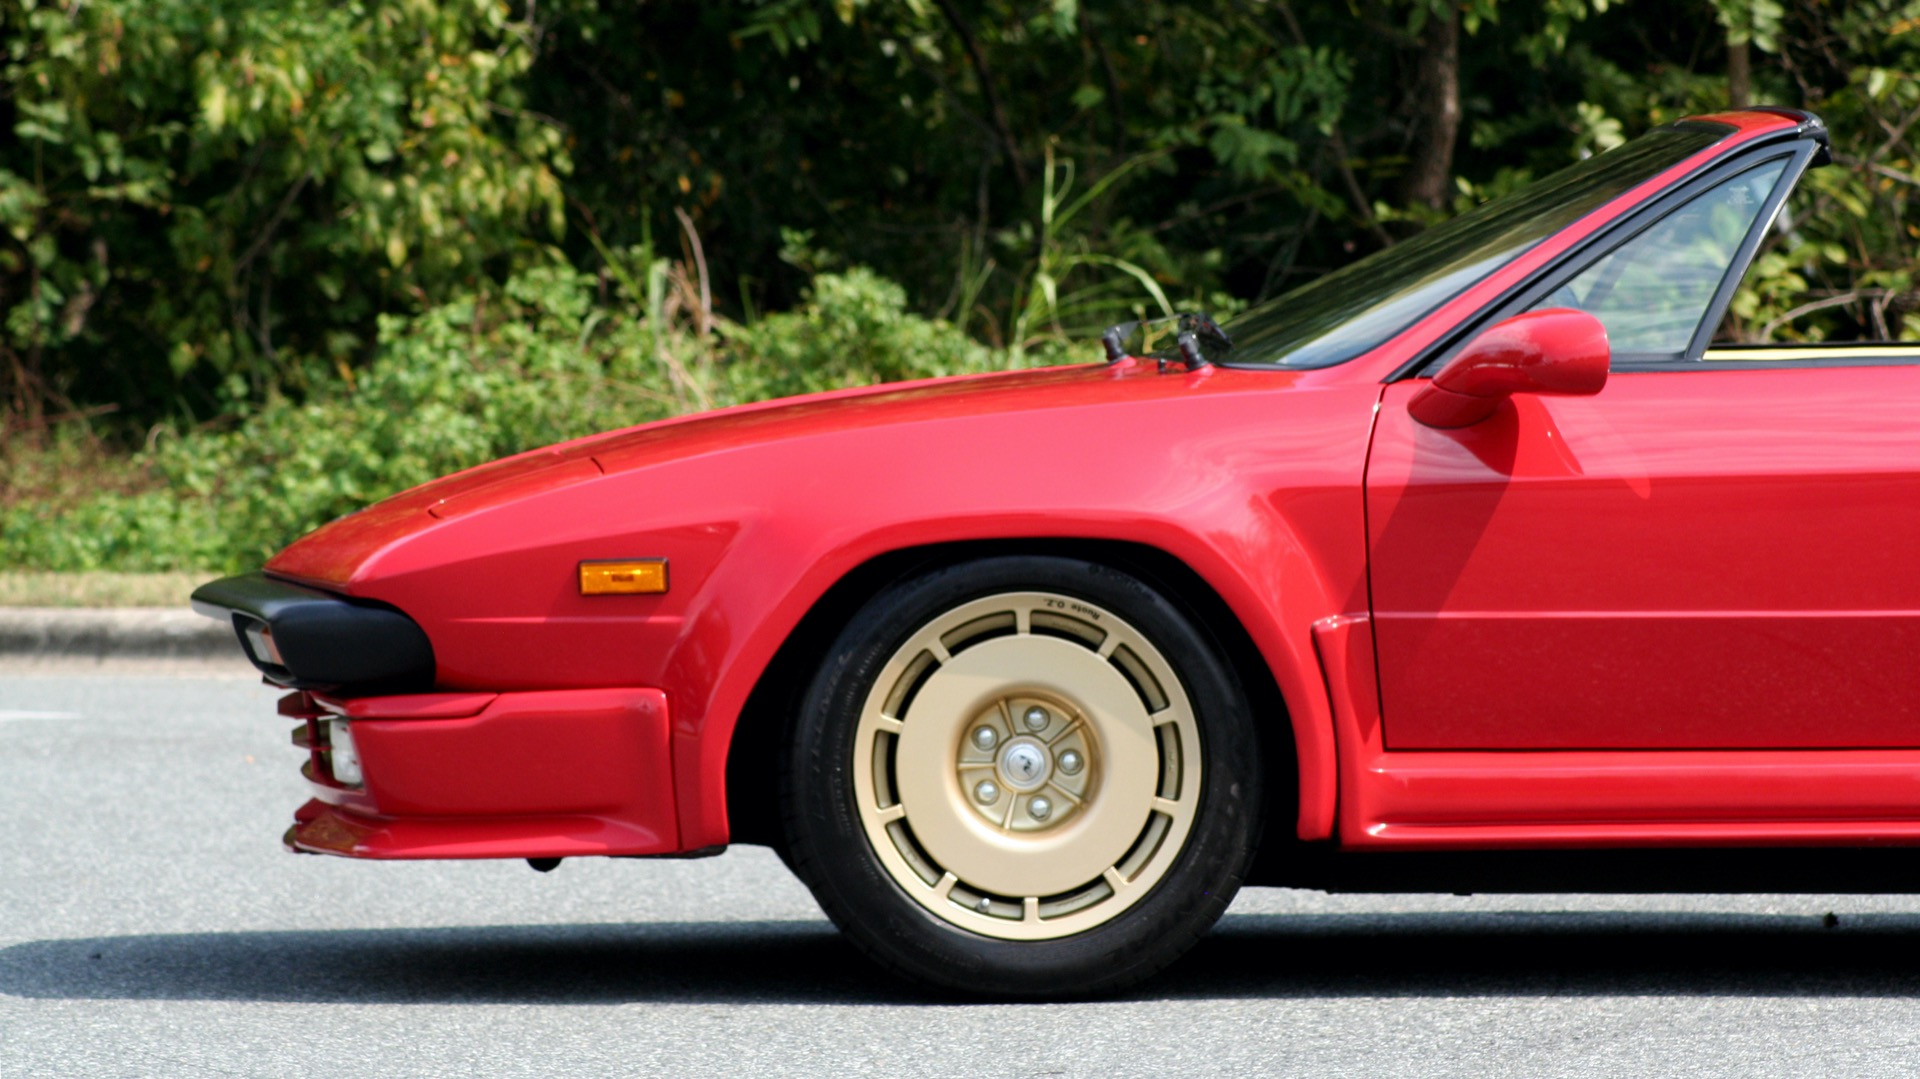 Used 1988 Lamborghini JALPA 3.5 / 5-SPD MANUAL / LOW MILES / EXCELLENT CONDITION for sale Sold at Formula Imports in Charlotte NC 28227 5